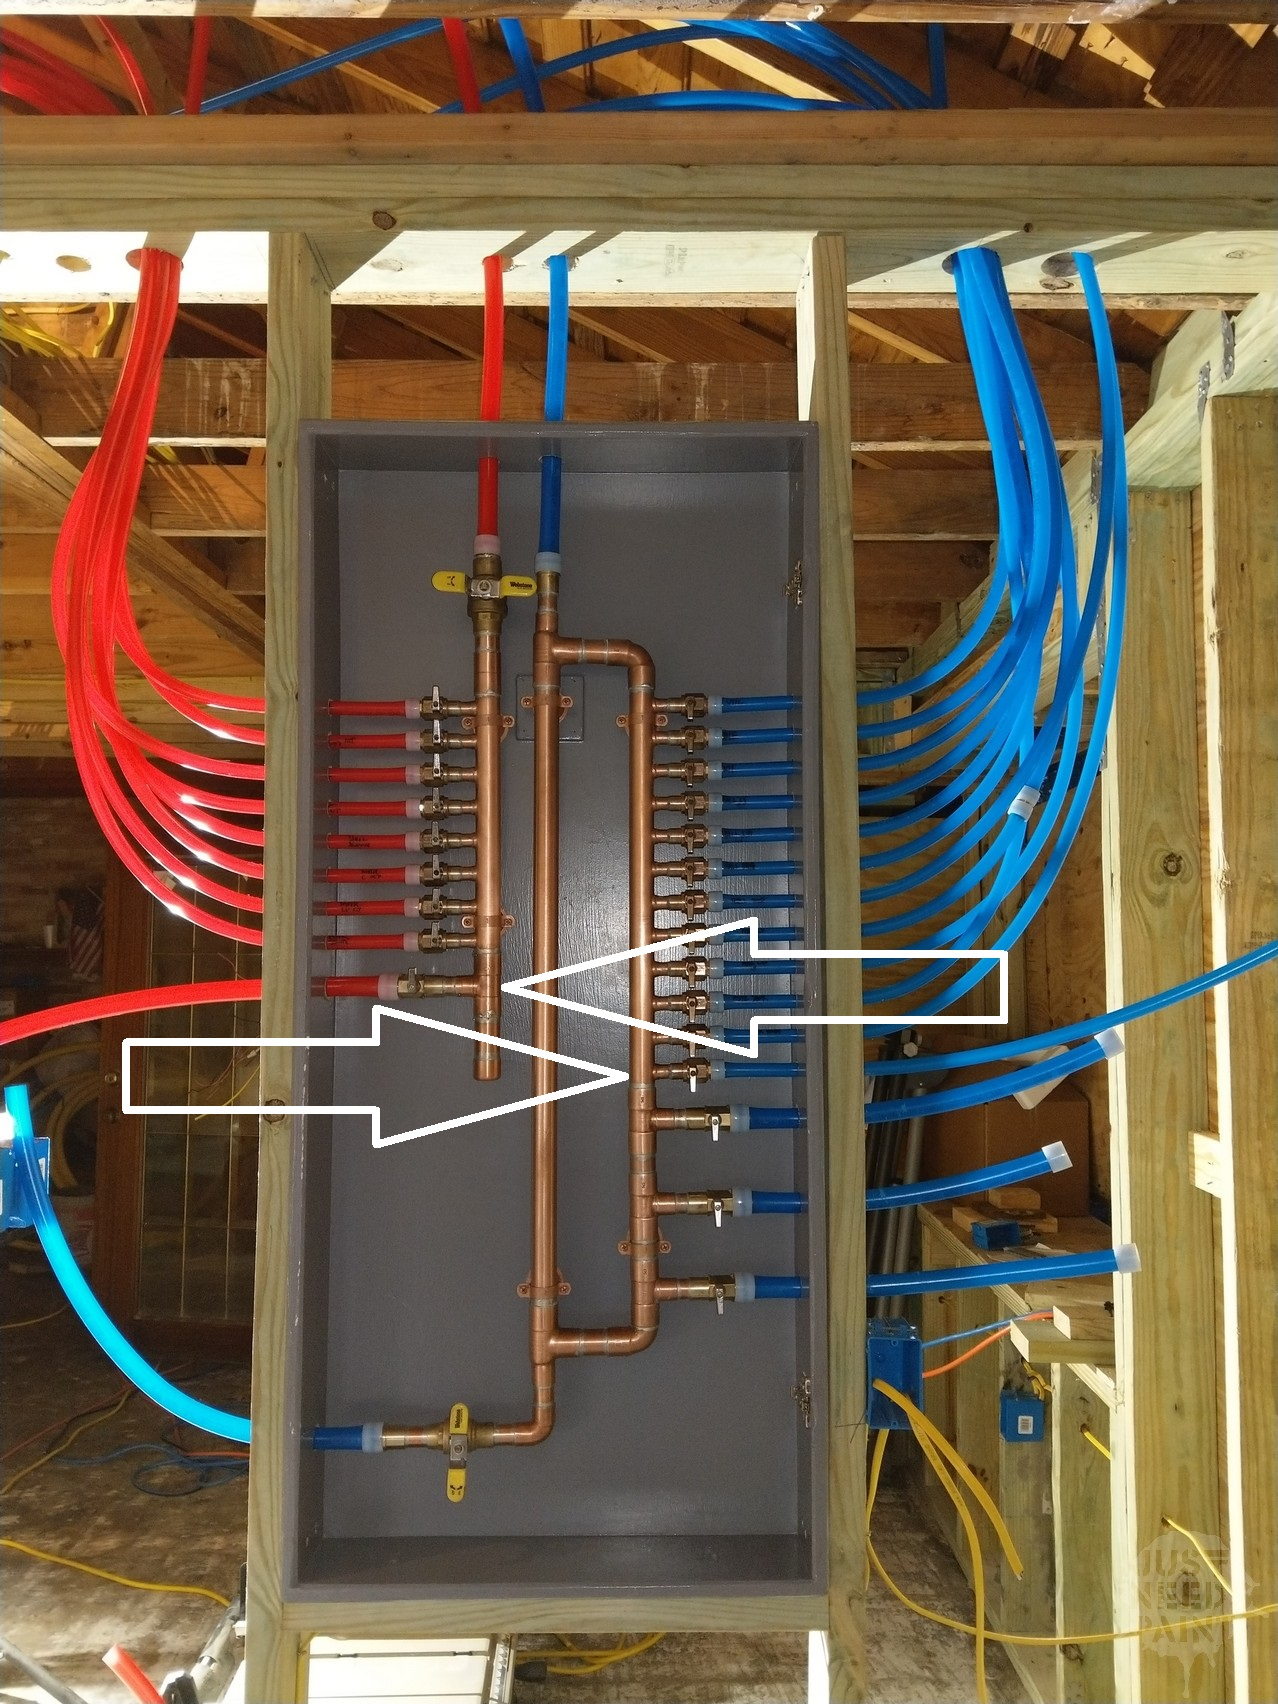 How to Build a PEX Manifold: A Step-by-Step Guide - Just